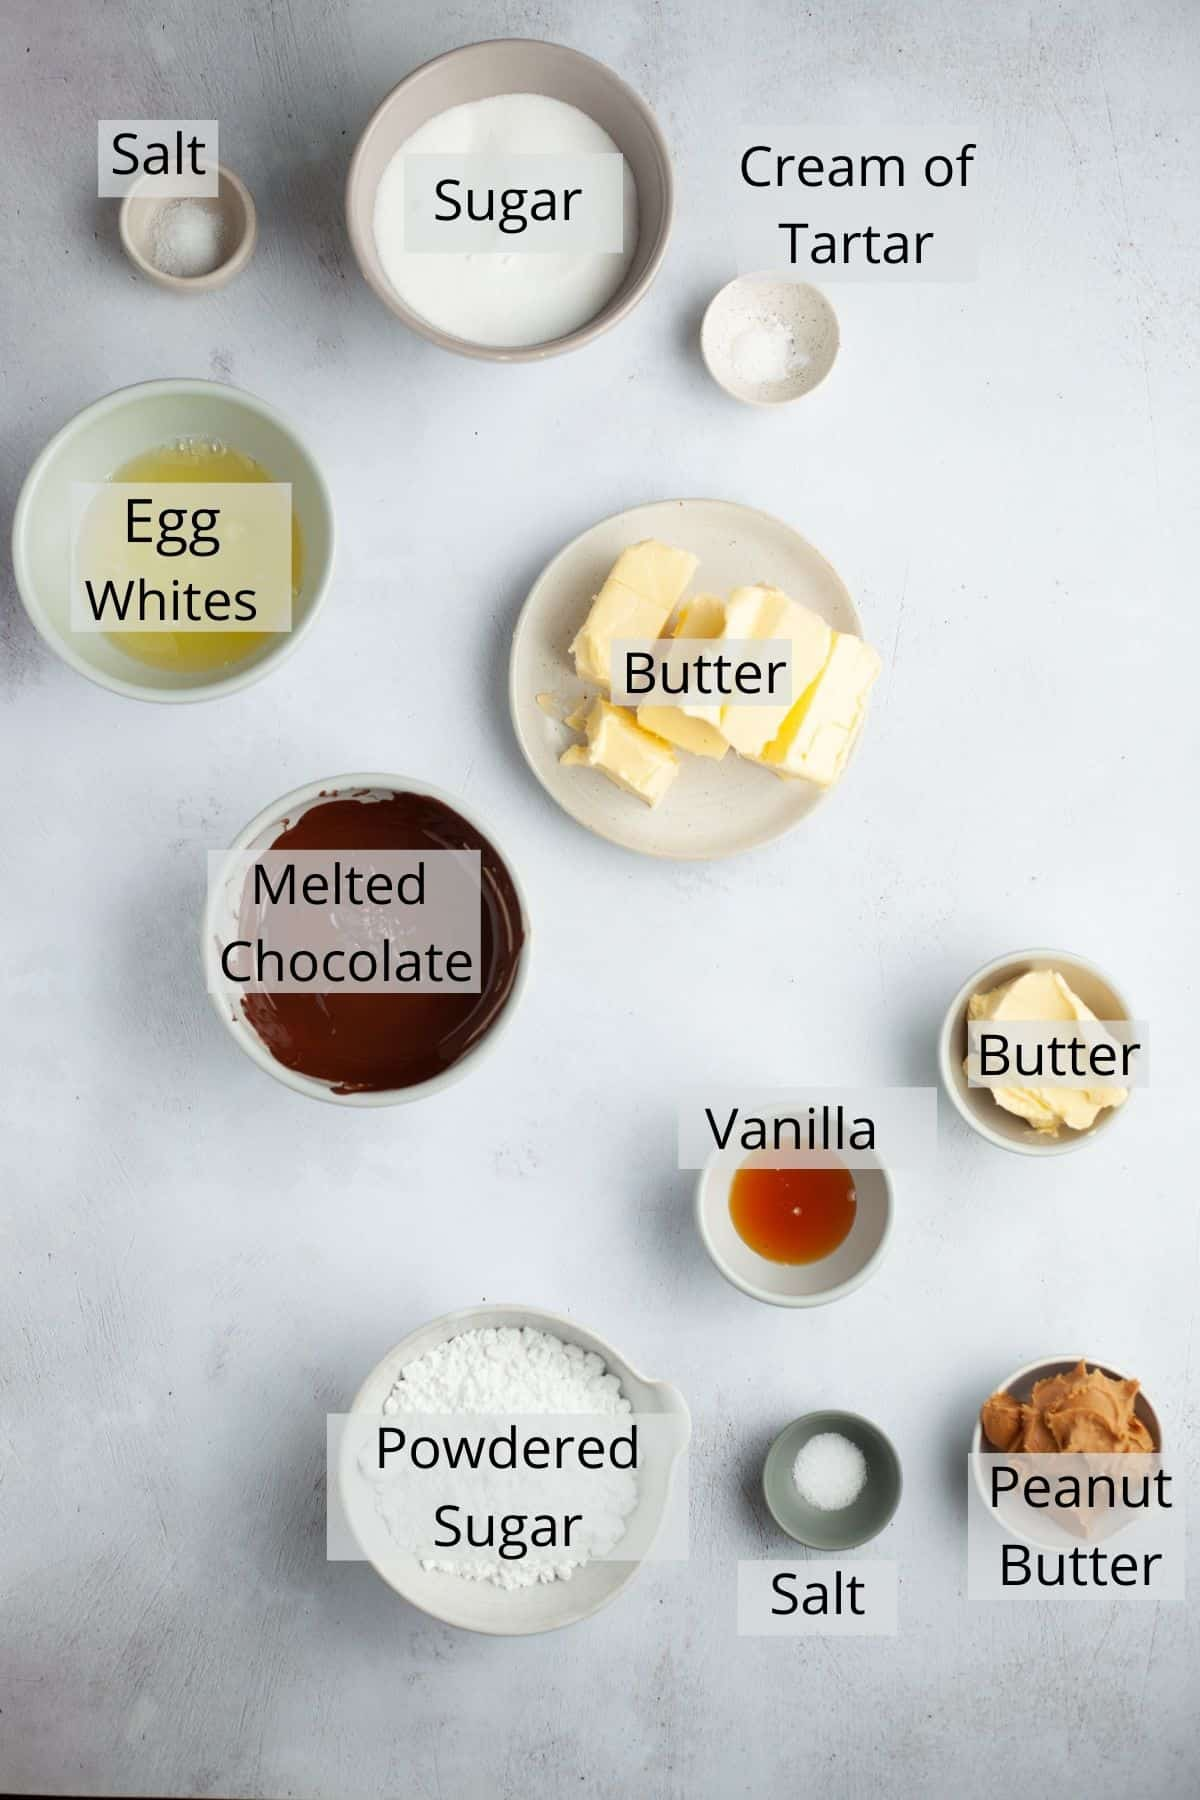 Ingredients needed for chocolate frosting and peanut butter filling